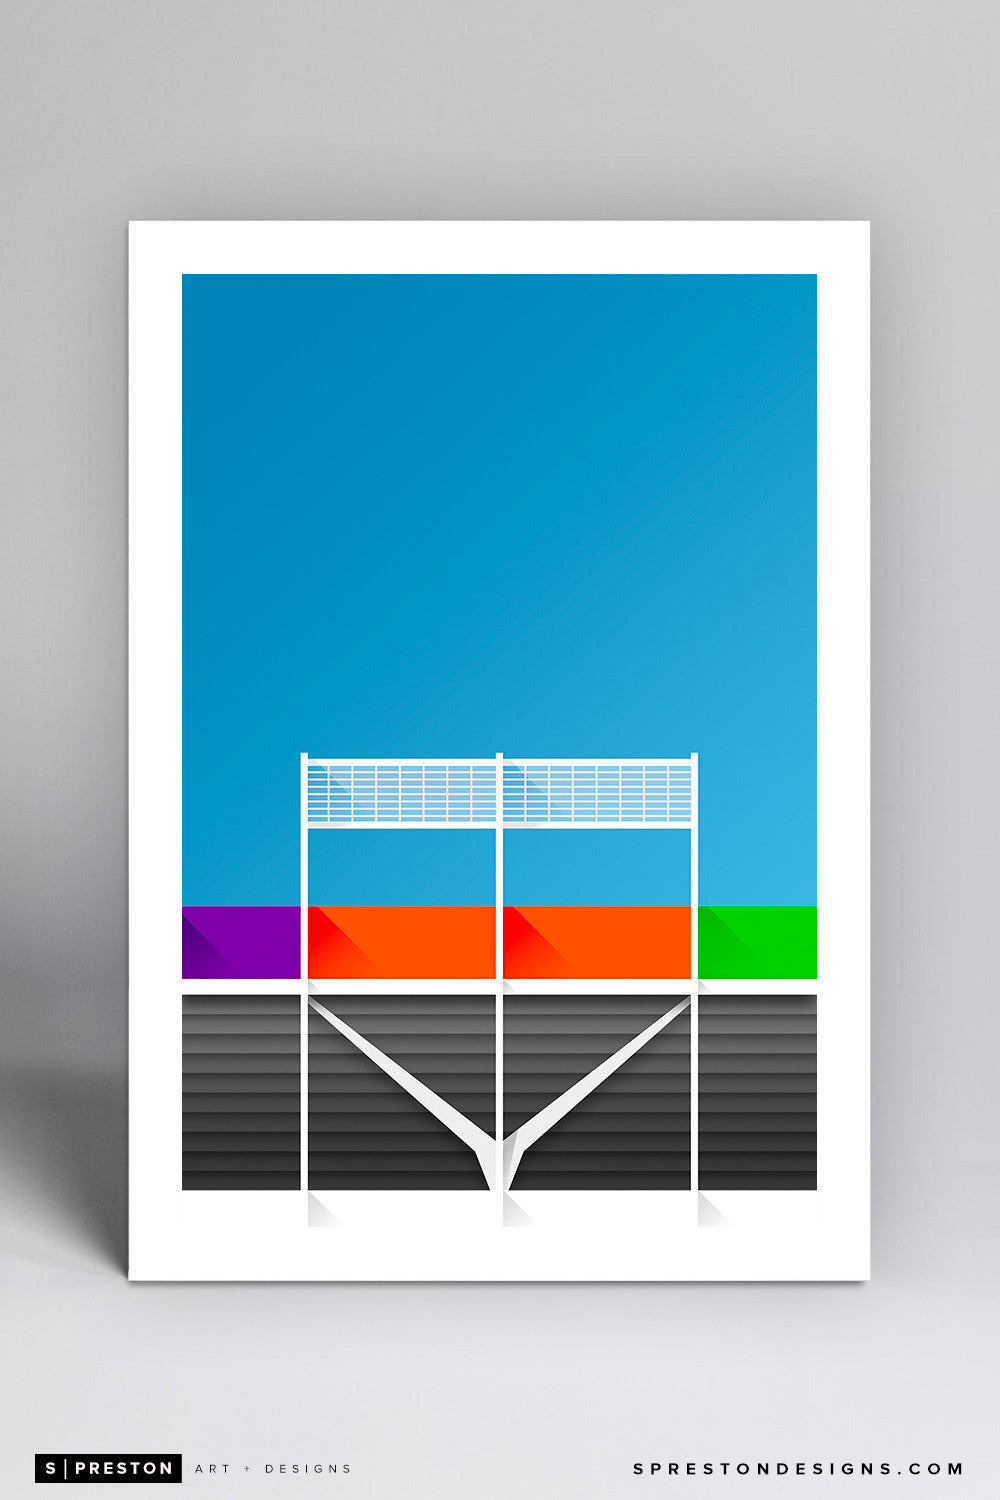 Minimalist FedExField Art Print - Washington Redskins - S. Preston Art + Designs